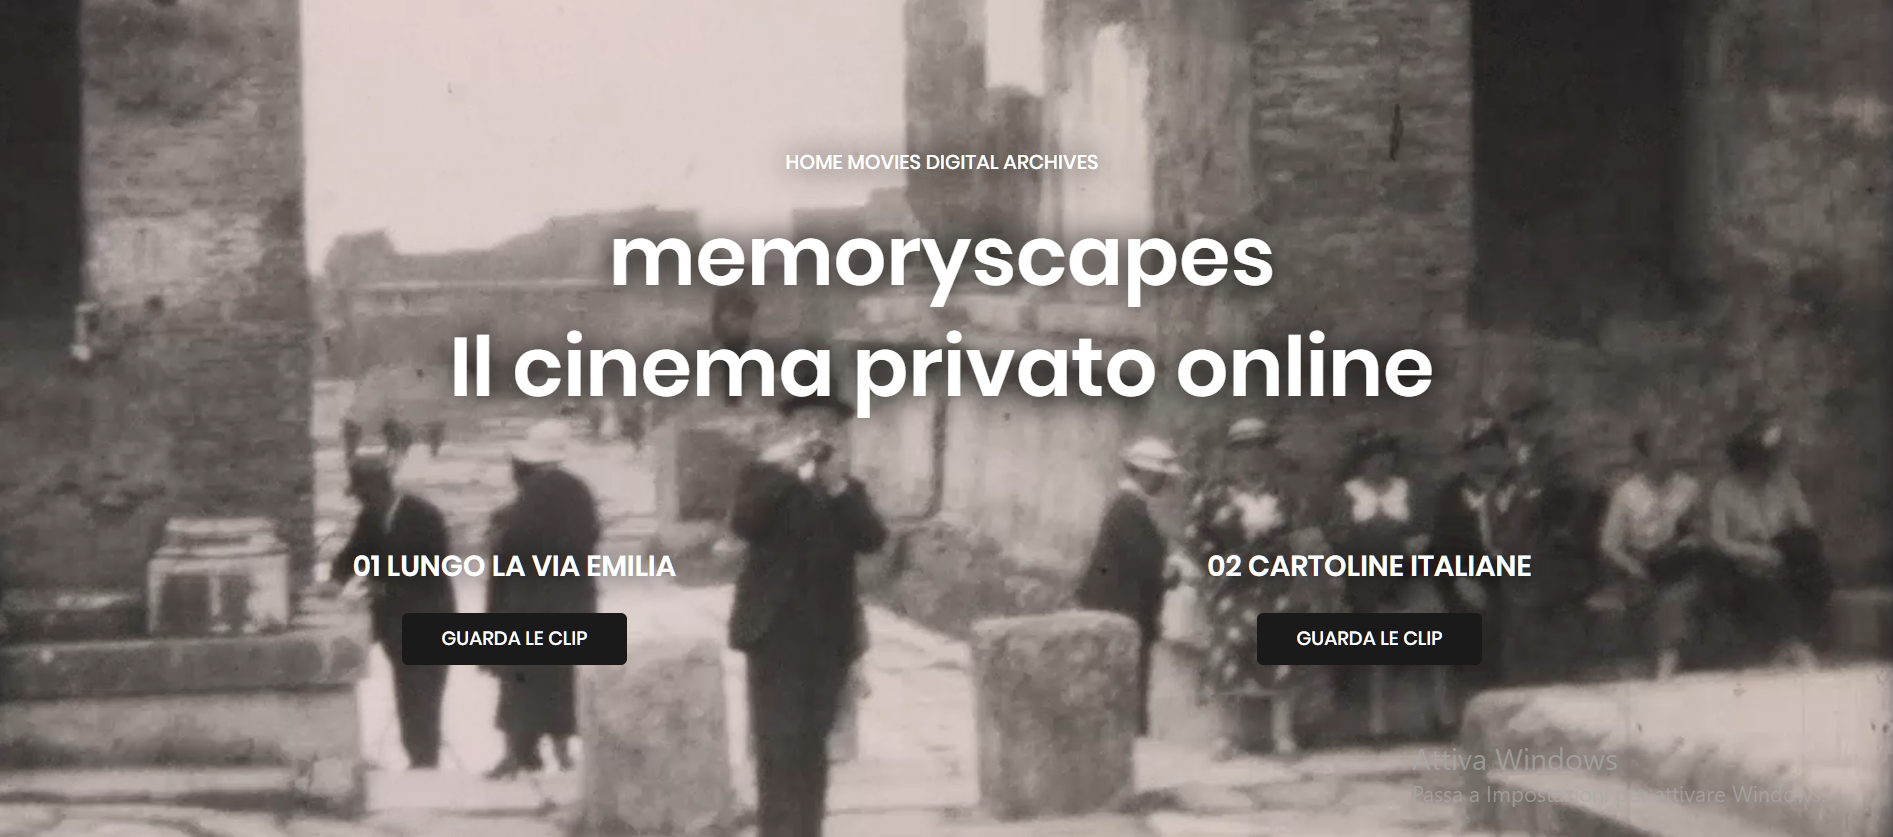 memoryscapes-homemovies